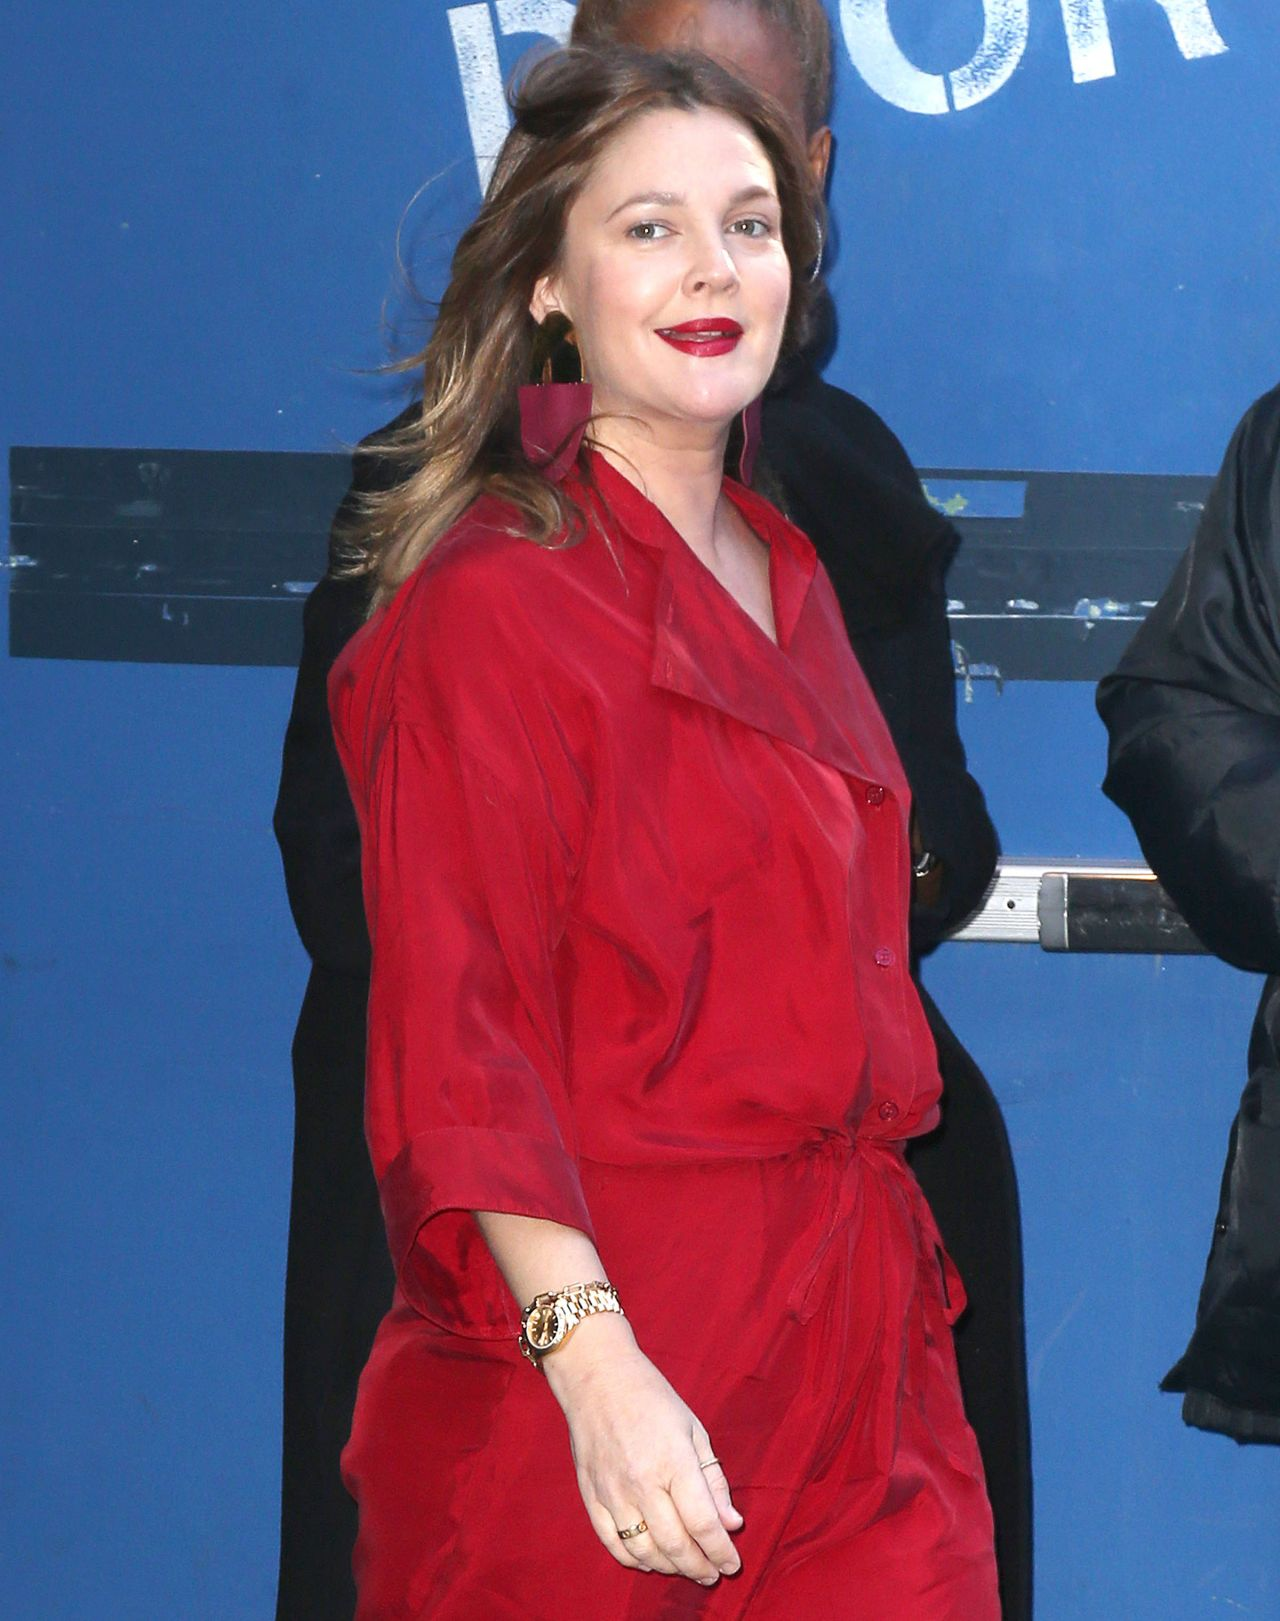 Drew Barrymore Arrives At Gma In Nyc 04 01 2019